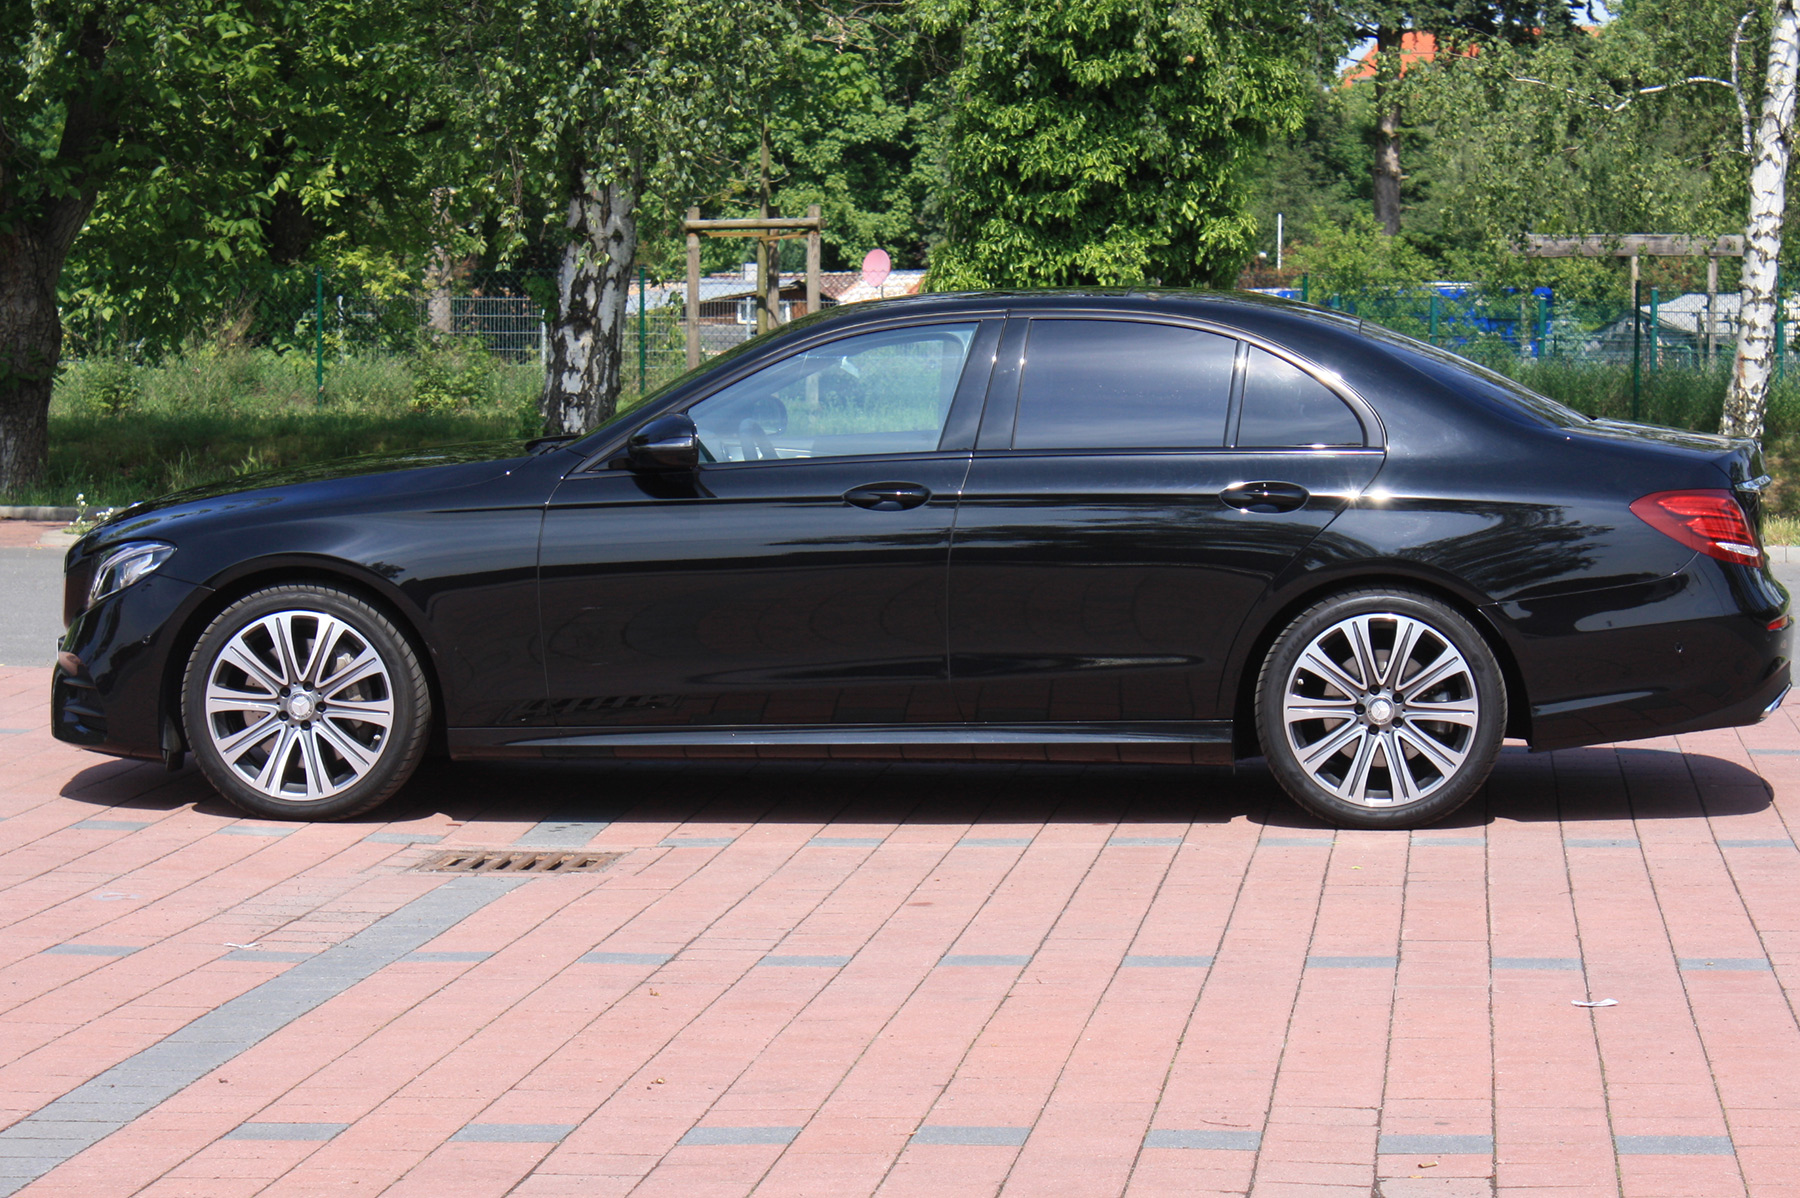 berlin limo, berlin limo hire the world awaits outside, the stress Limousine 14 Personen.htm #8